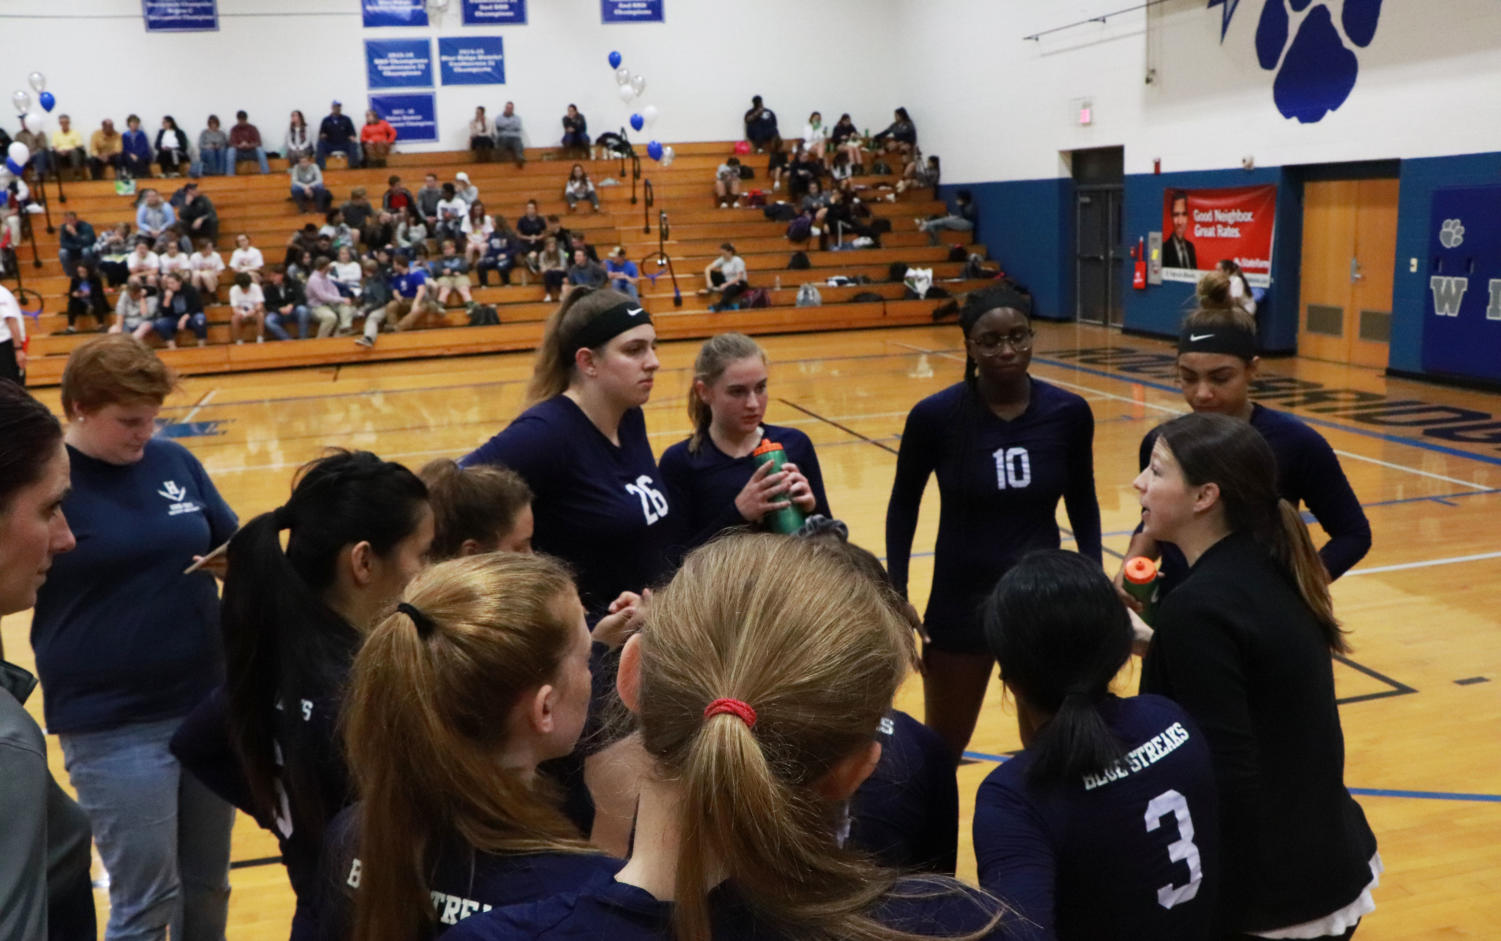 Coach+Hannah+Bowman+discusses+strategy+during+a+timeout+in+the+first+set.+